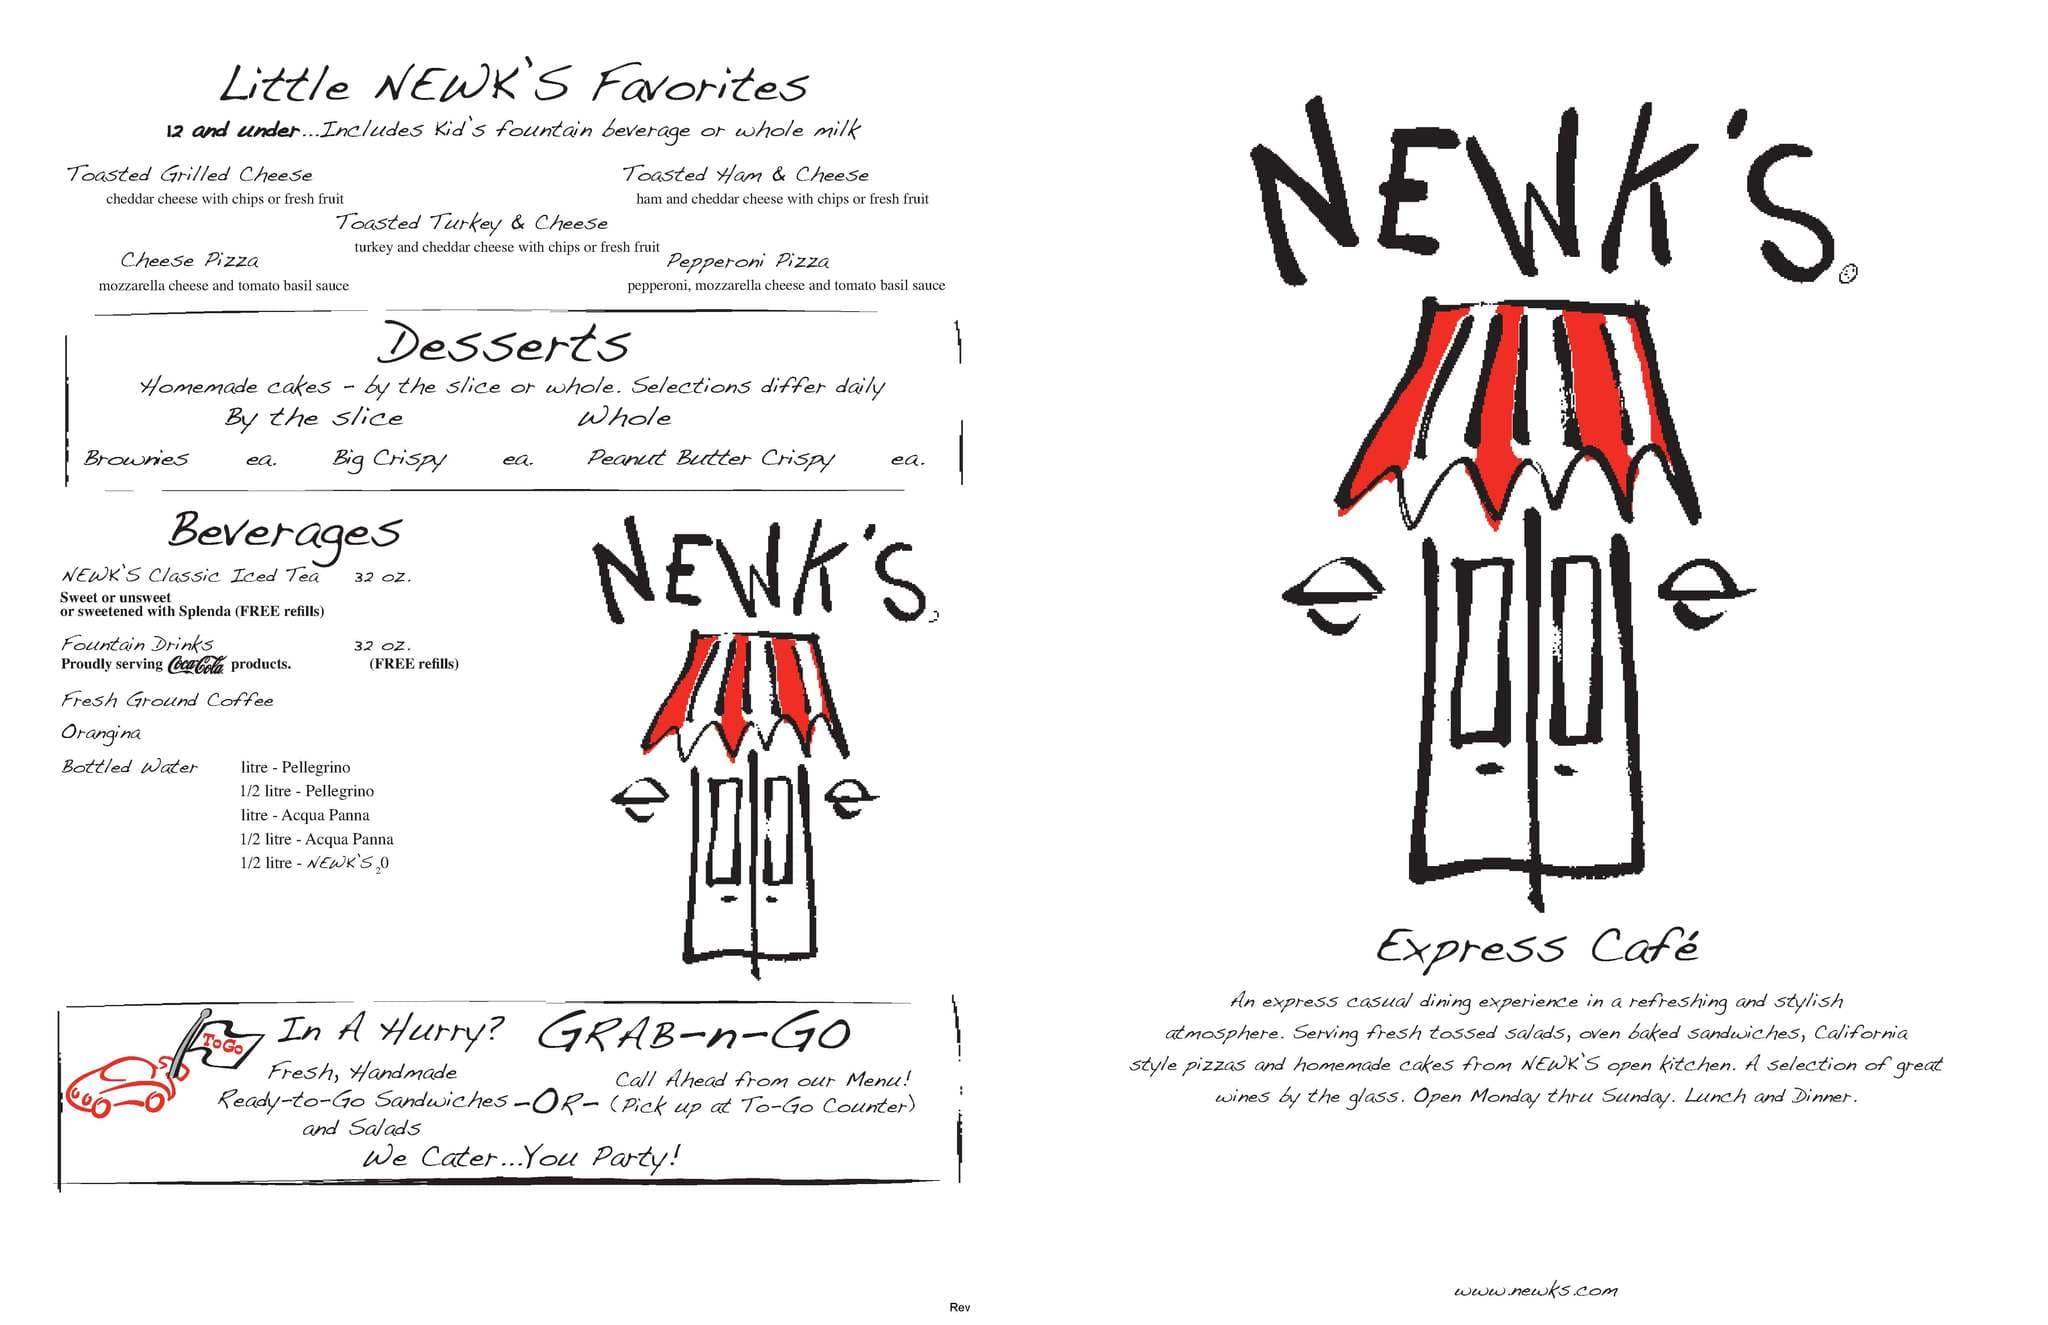 photograph about Newks Printable Menu named Newks Specific Restaurant Menu, Menu for Newks Specific Restaurant